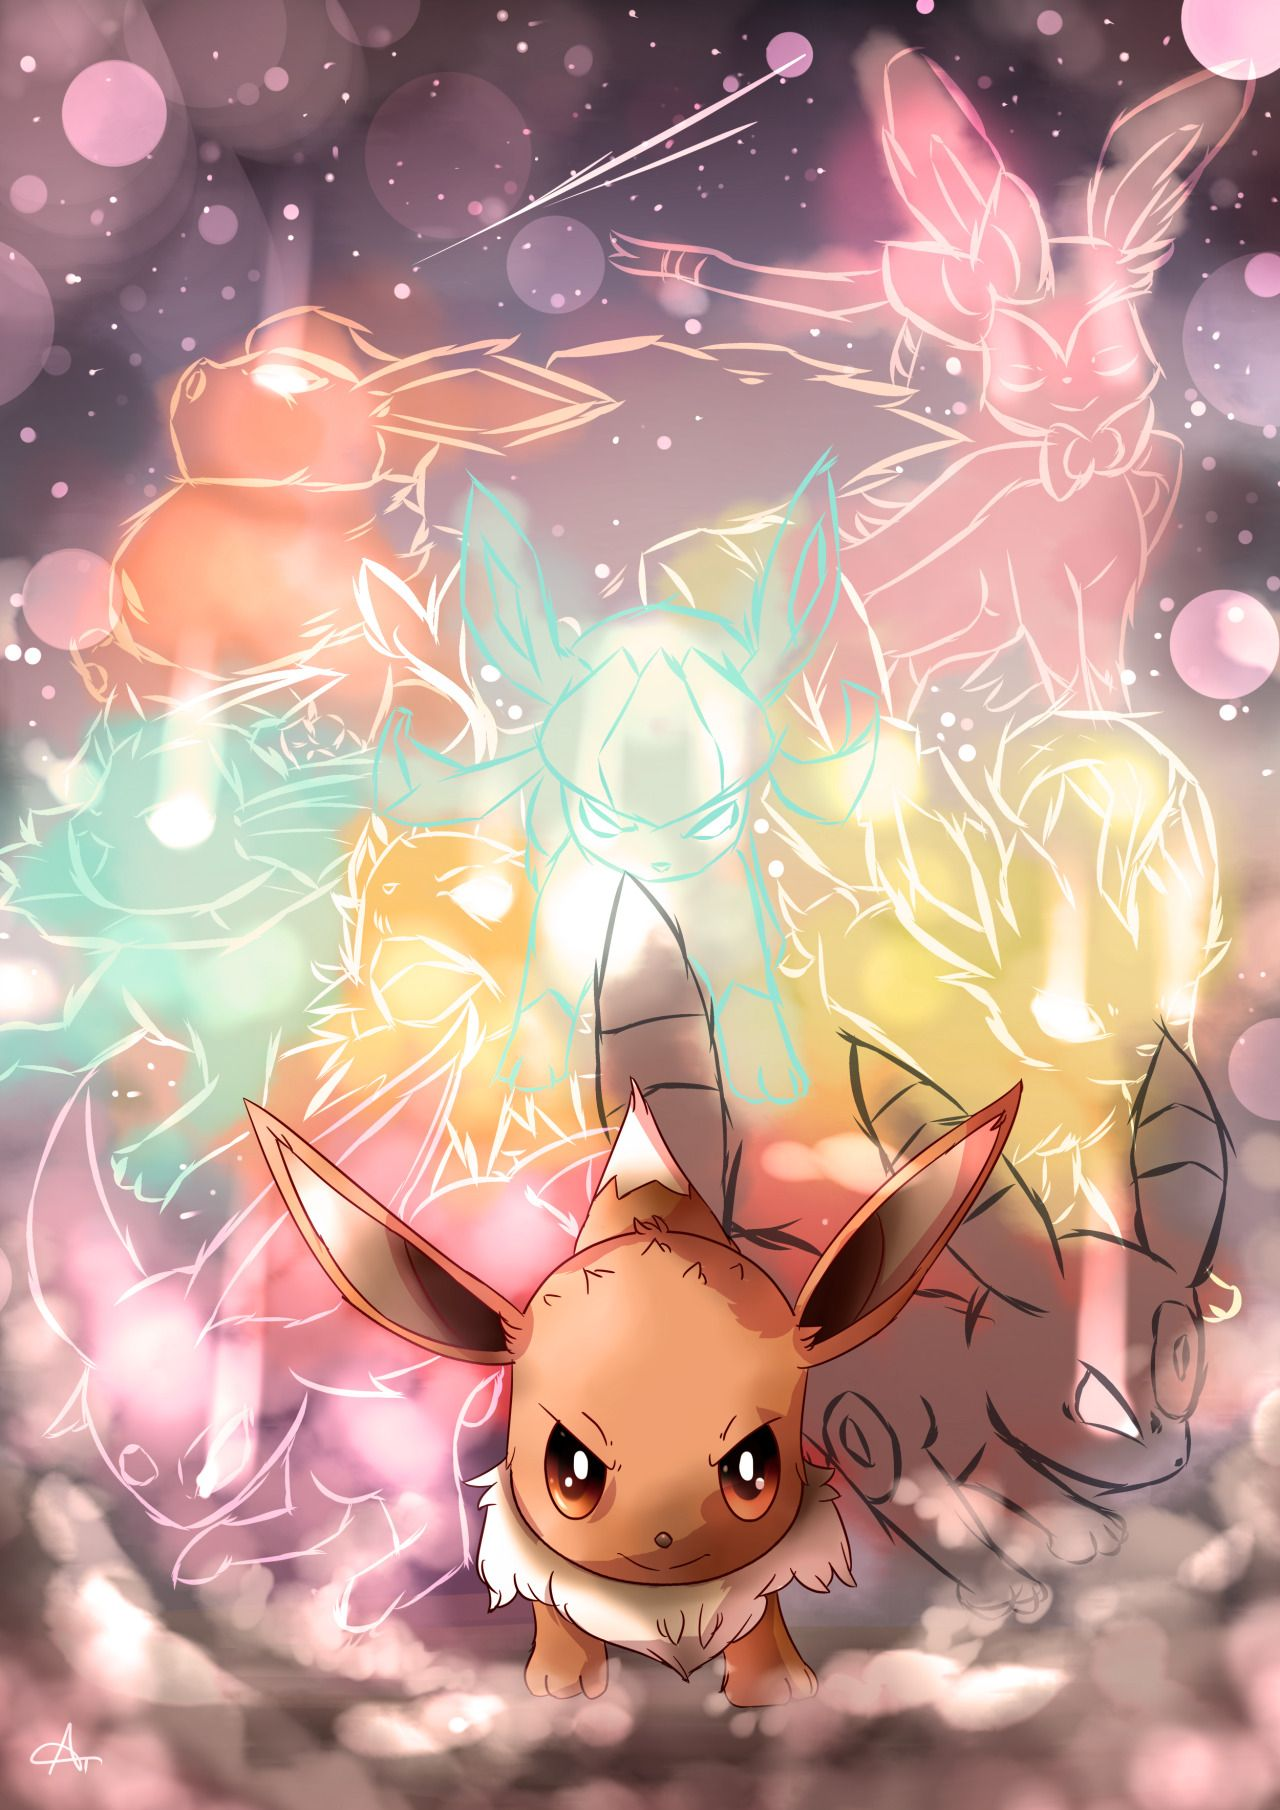 Day eivui イーブイ eevee eeveeus genes are unstable and